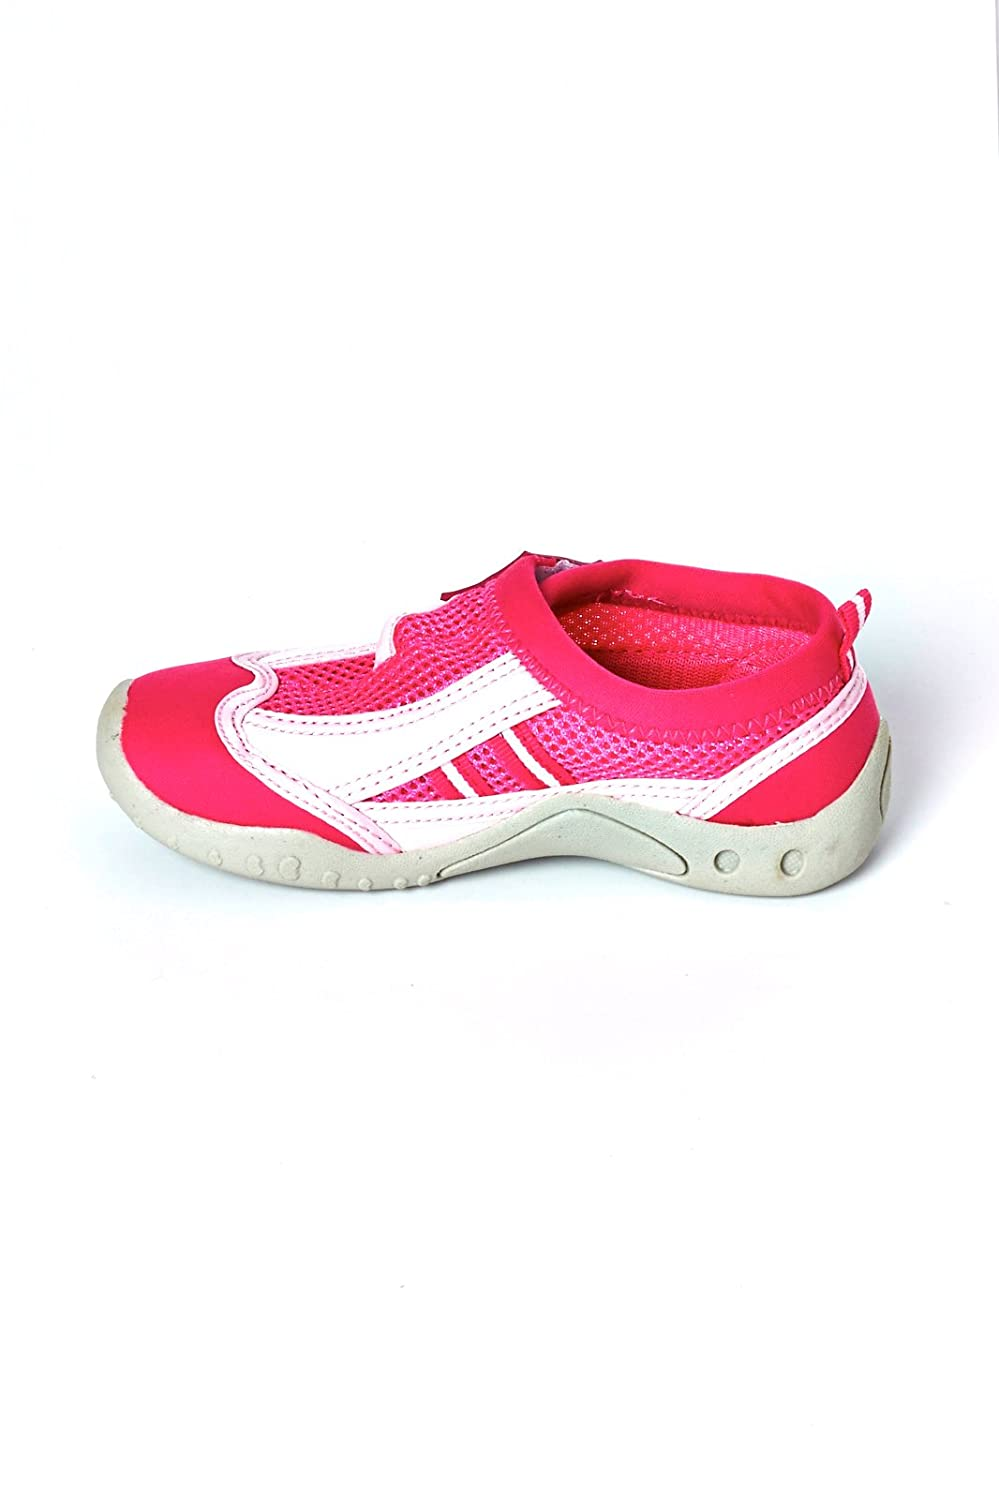 High Style Little and Big Kid's Aqua Water Shoes - Beach Shoes with Velcro closure толстовка wearcraft premium унисекс printio неизвестный солдат